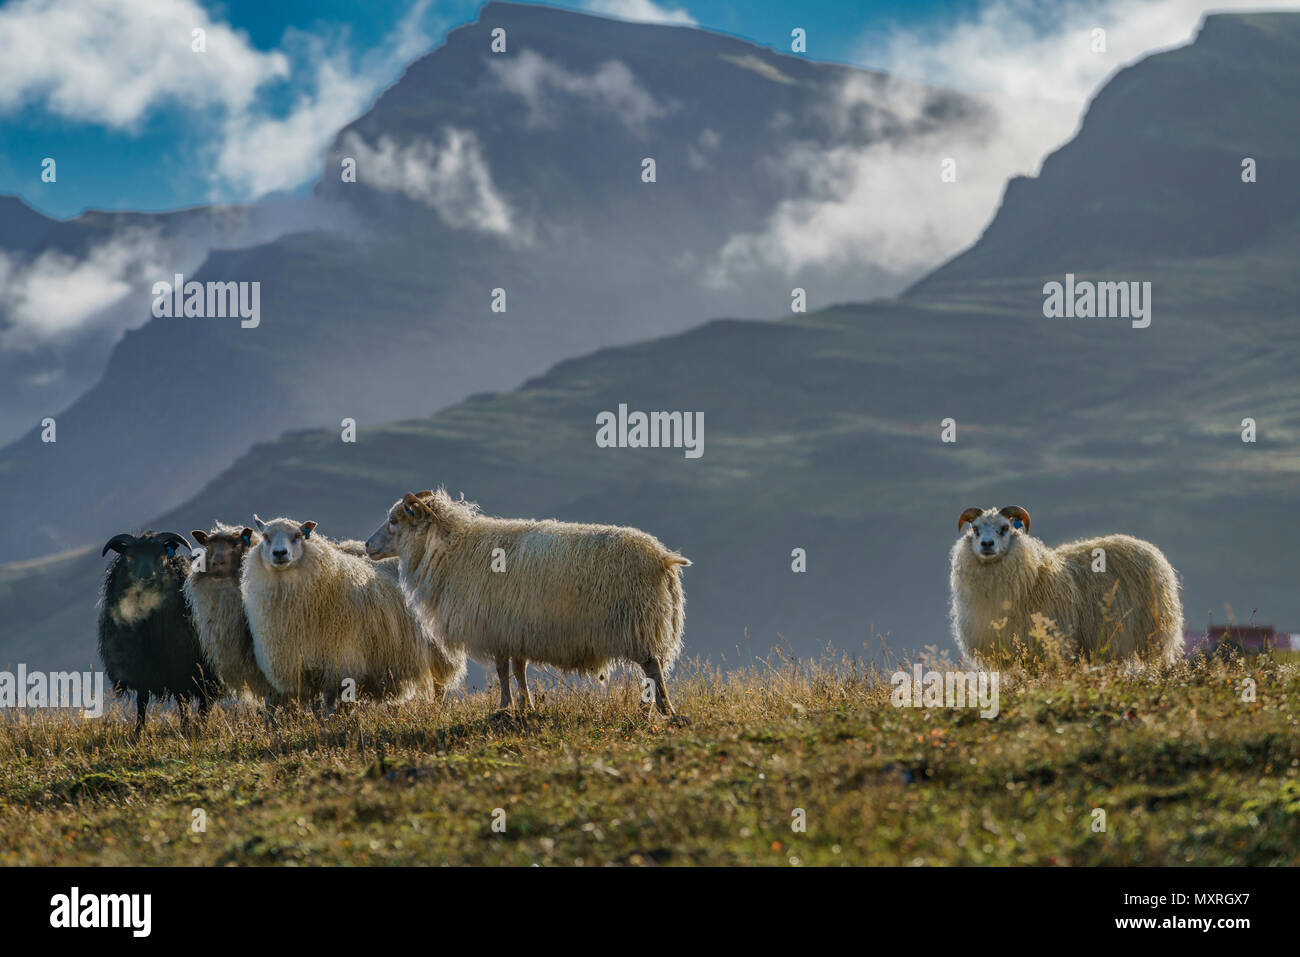 Free Range Sheep grazing on grass and herbs, Eastern Iceland - Stock Image